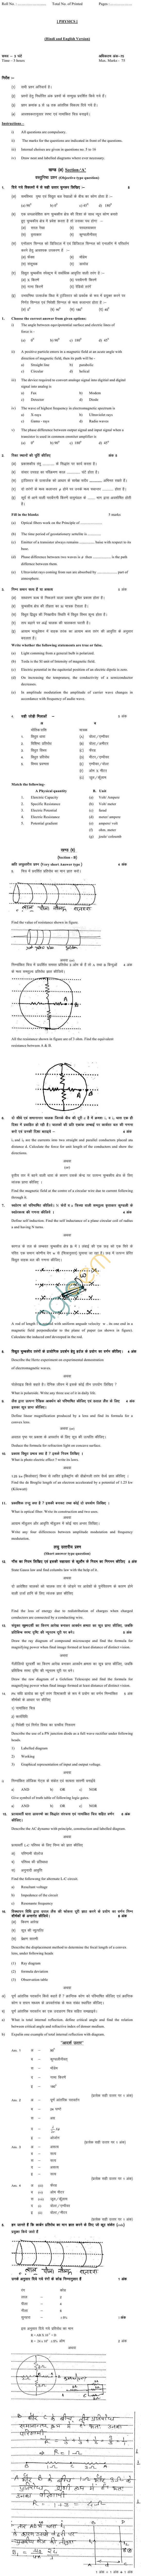 MP Board Class XII Physics Model Questions & Answers - Set 3